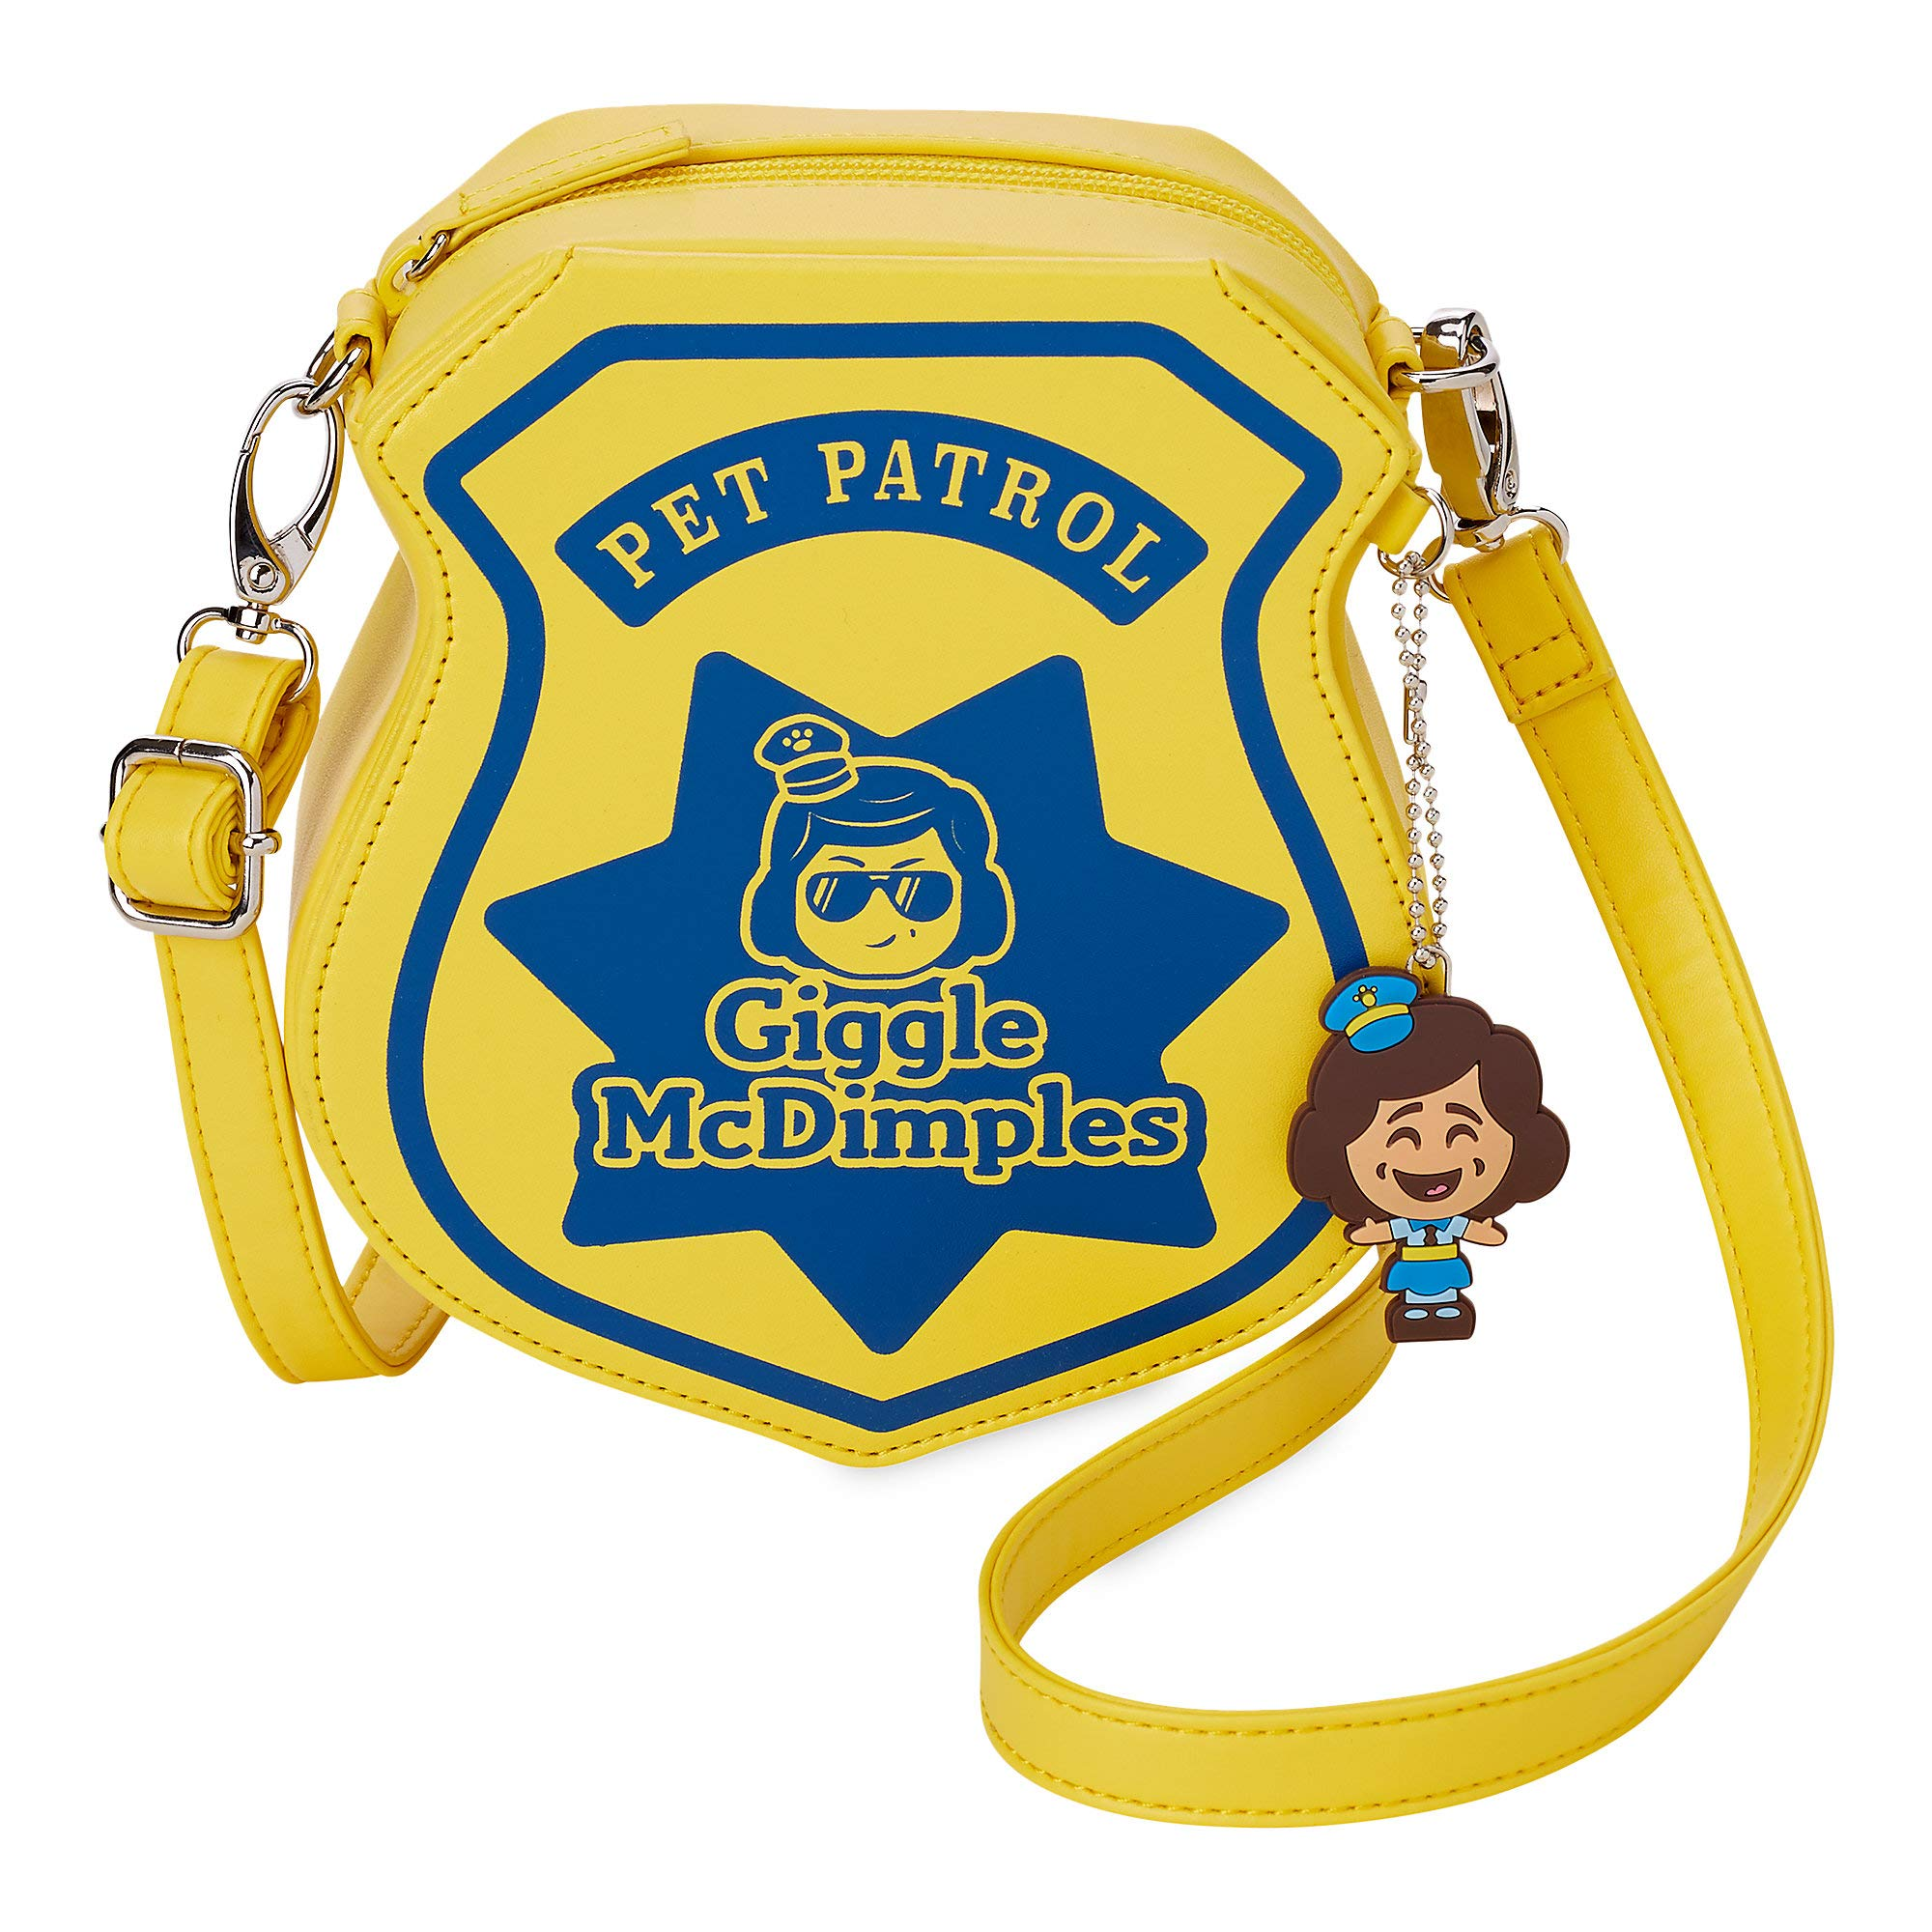 Disney Giggle McDimples Pet Patrol Crossbody Bag - Toy Story 4